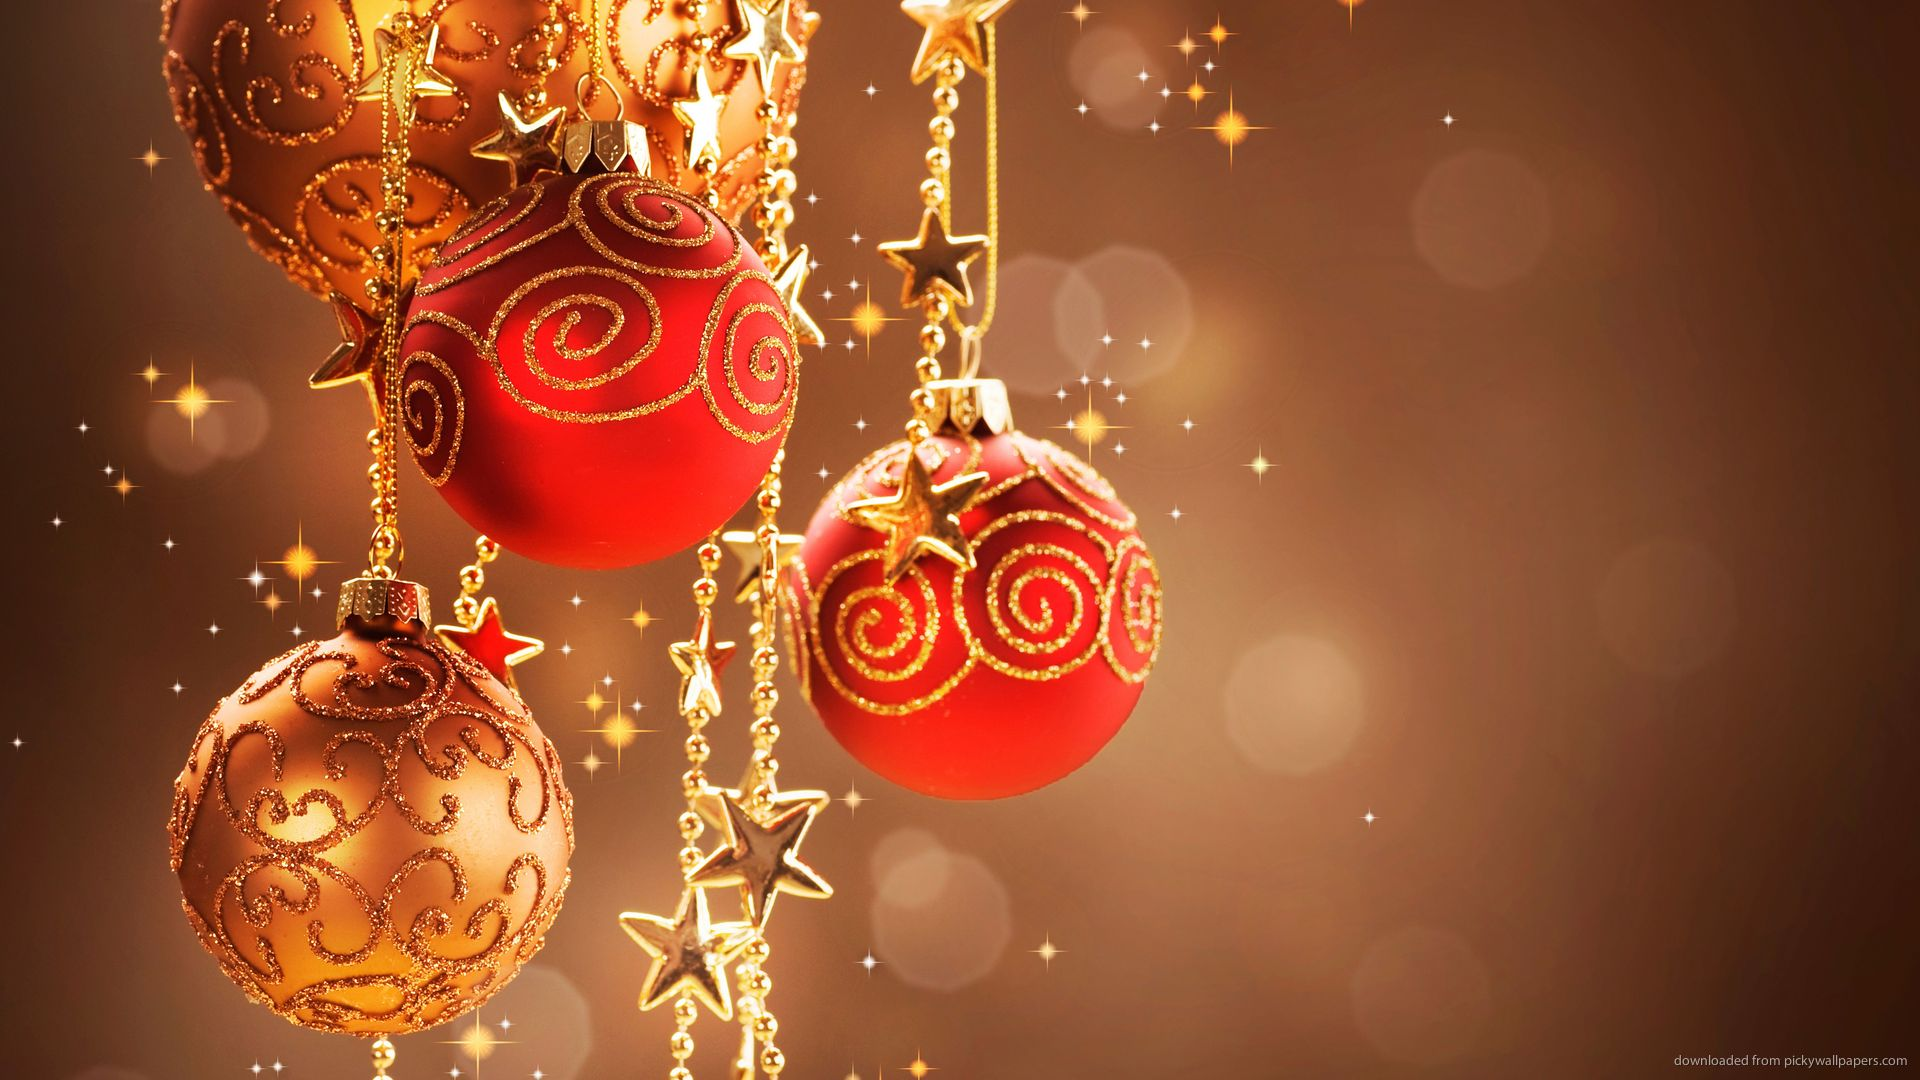 Christmas Wallpapers 1920x1080   Fast Images 1920x1080